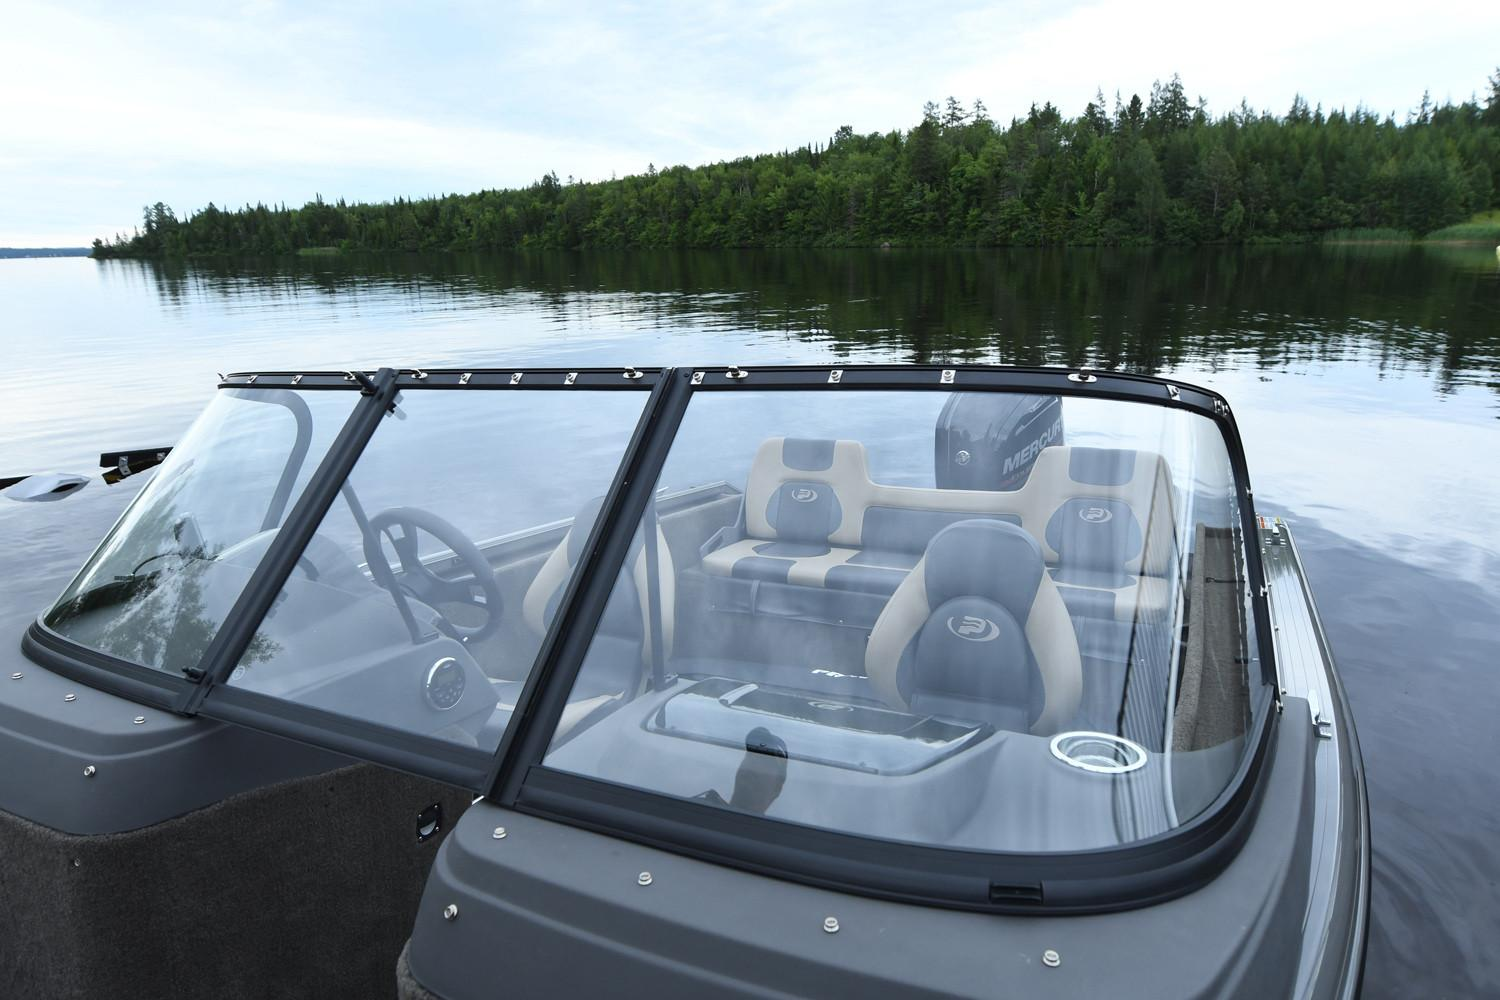 2018 Princecraft Sport 177 in Center Ossipee, New Hampshire